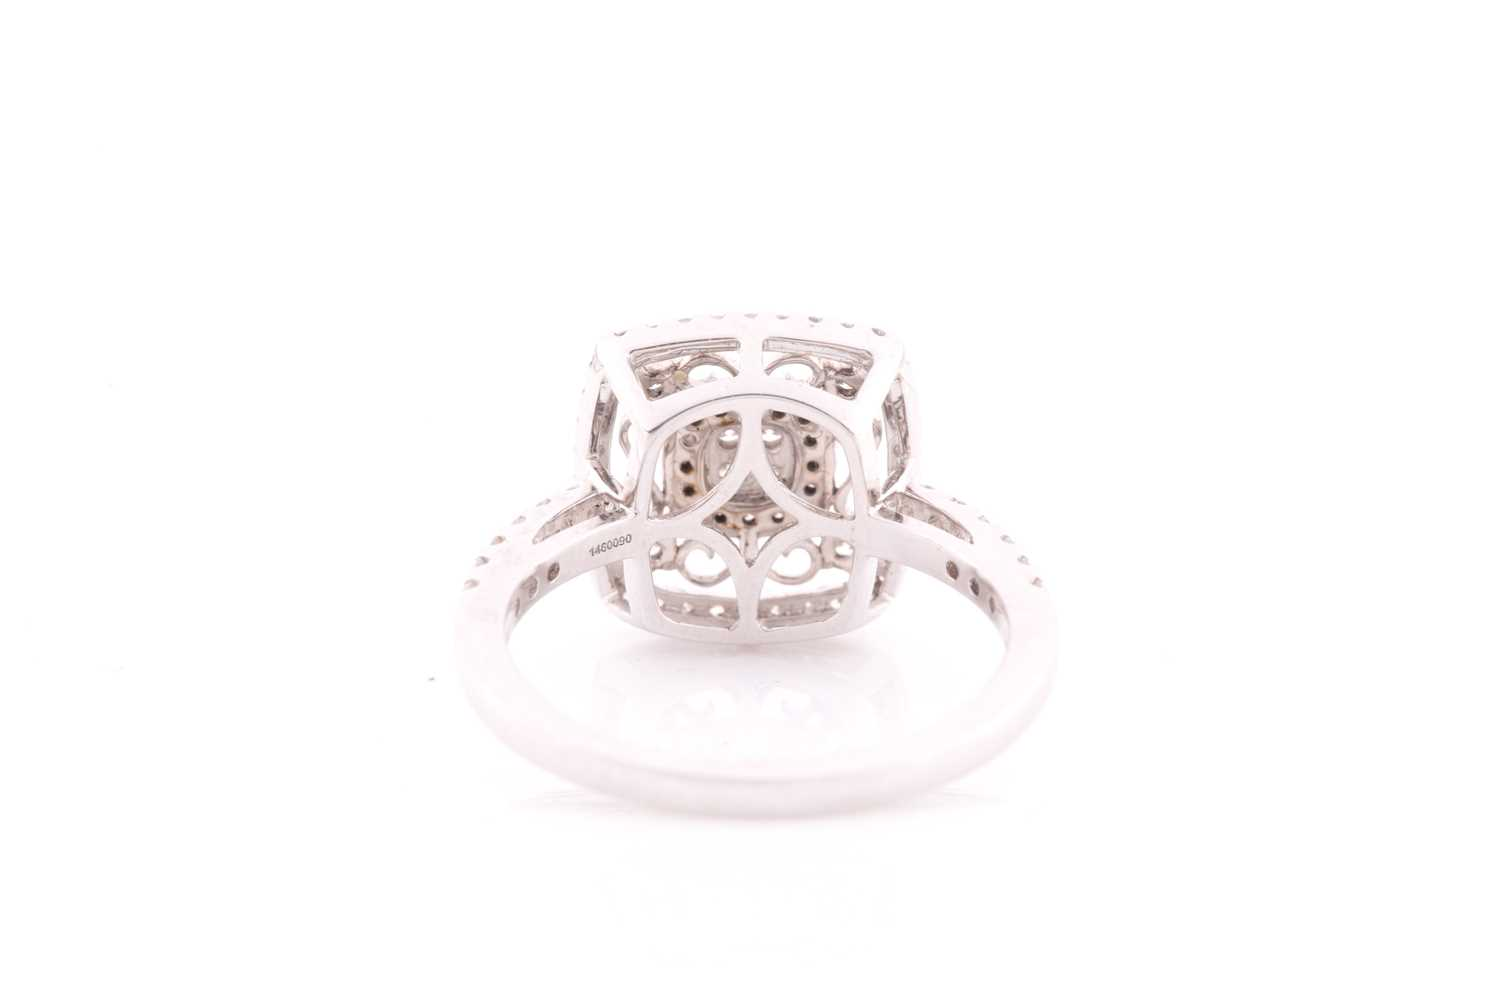 An 18ct white gold and diamond ring, the openwork mount with filigree style decoration, inset with - Image 2 of 4